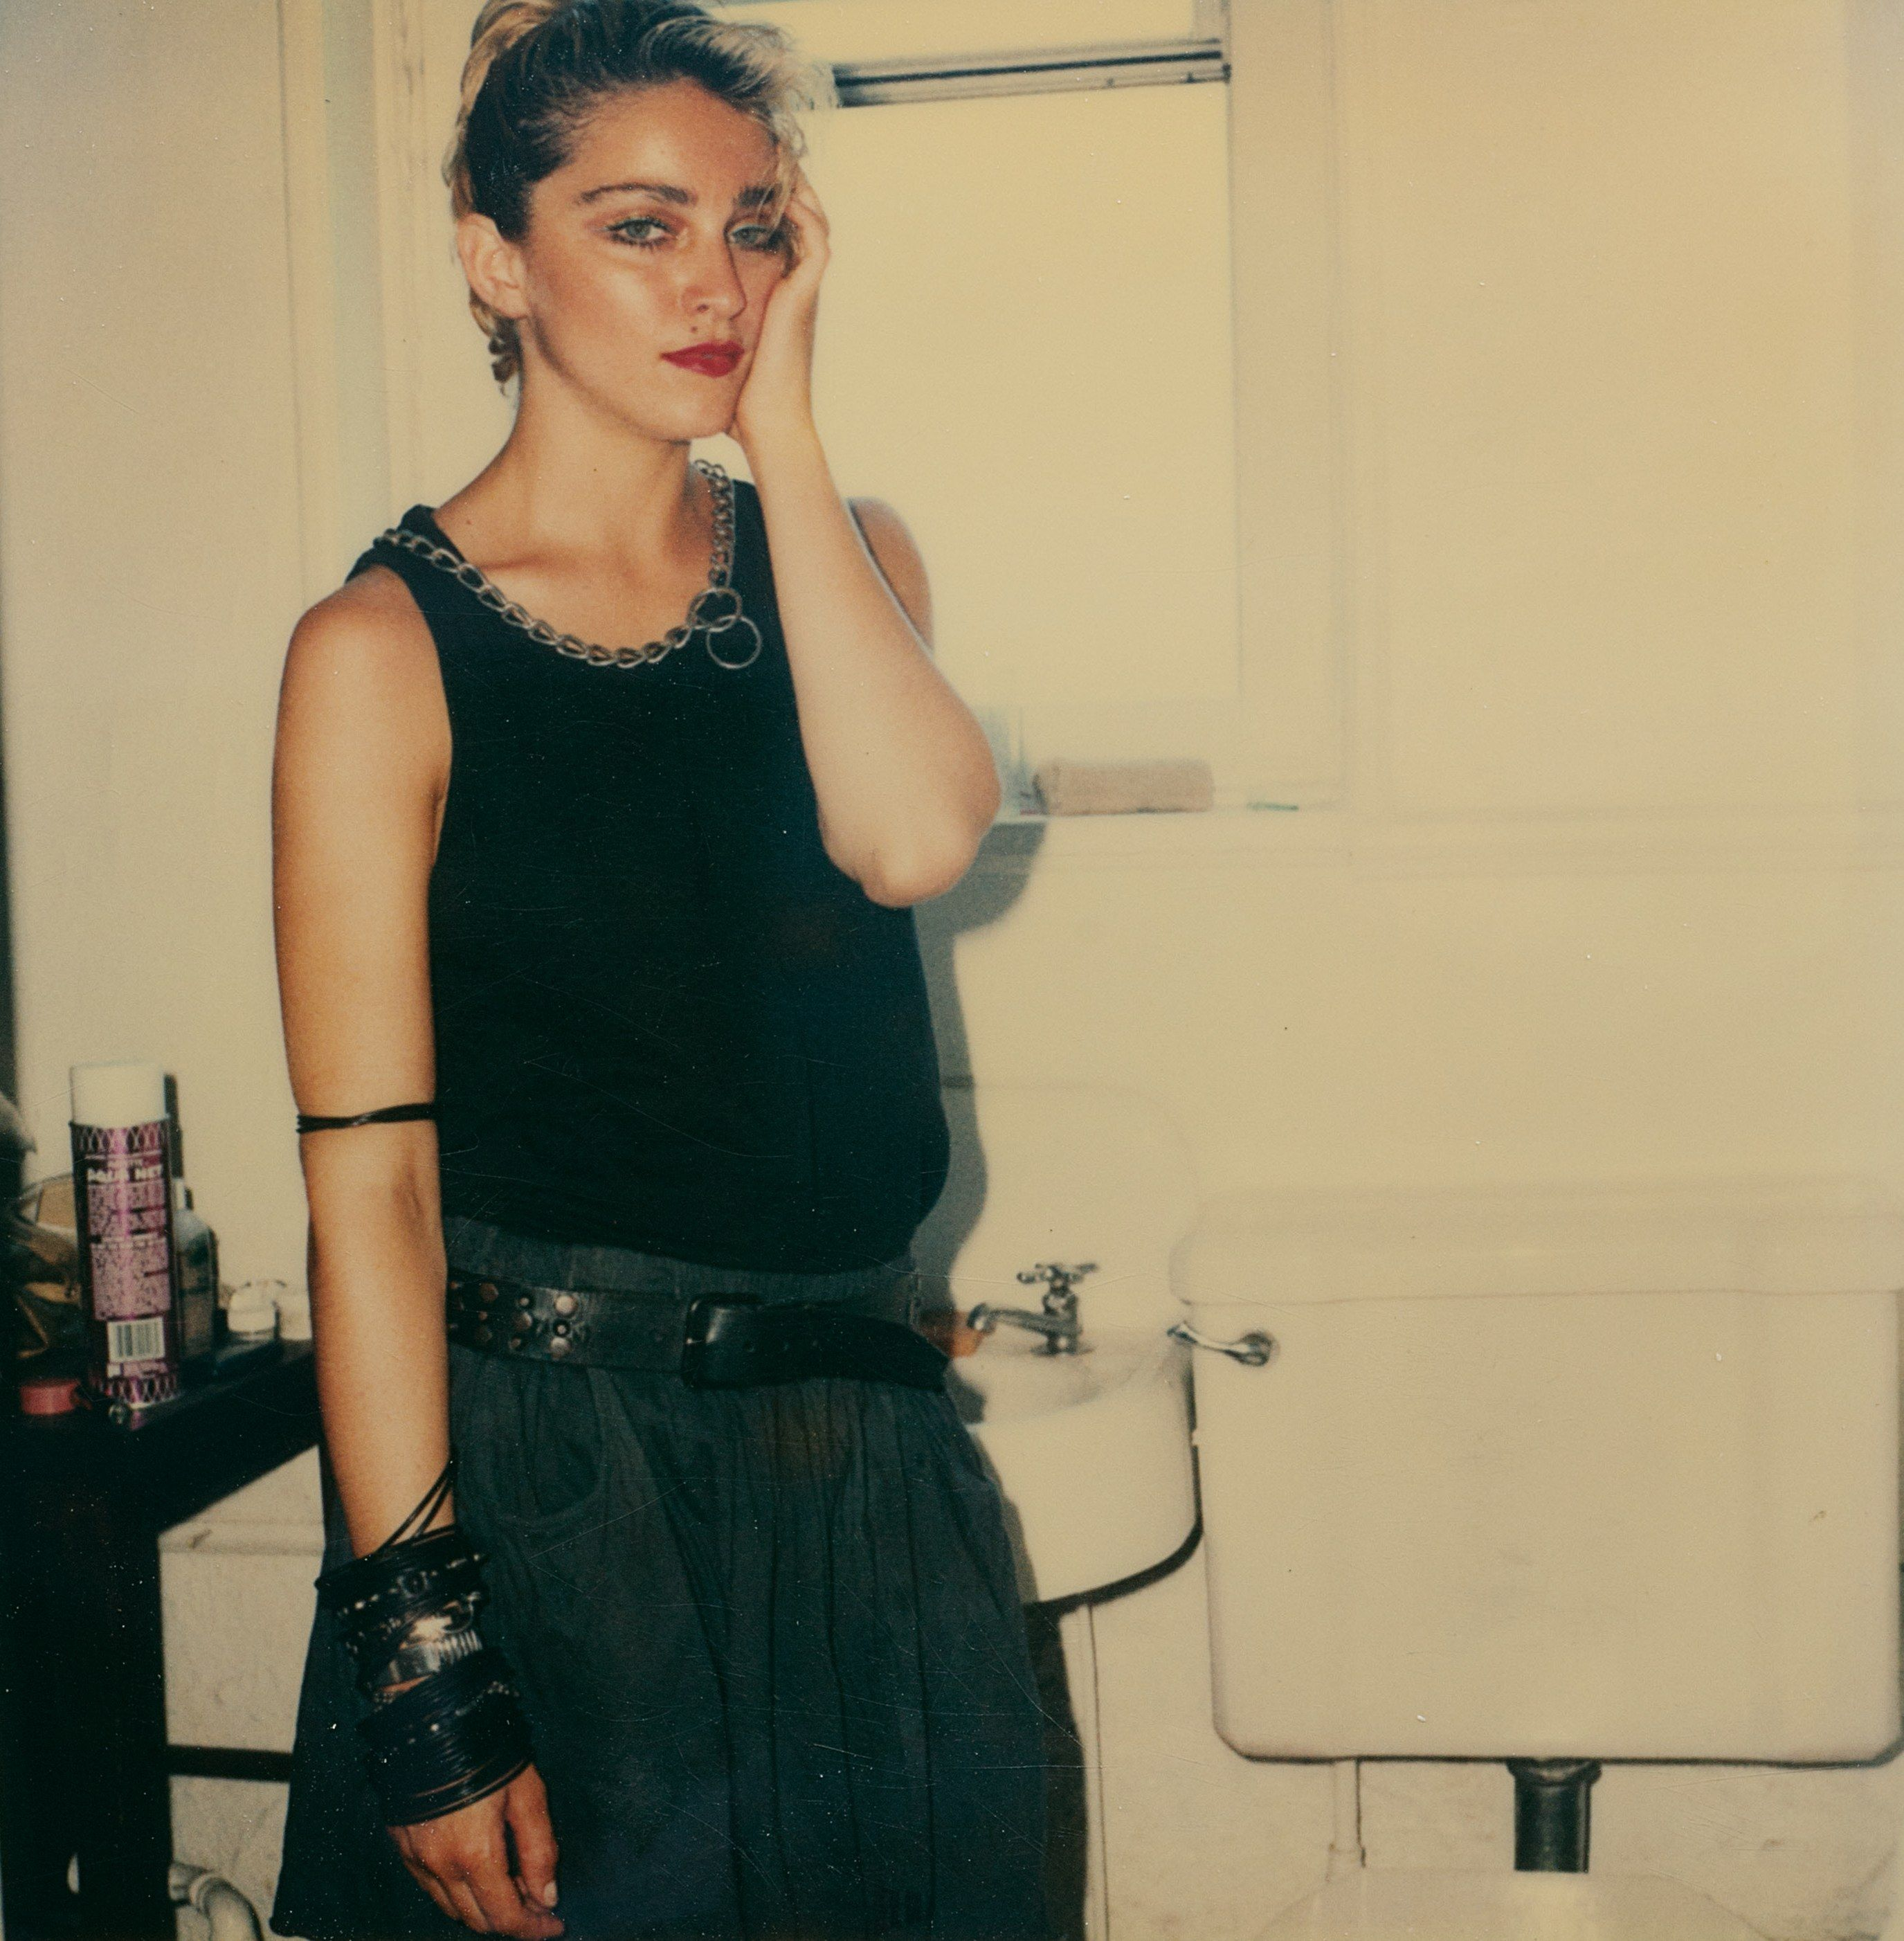 66 long-lost polaroids of madonna in 83 show a mega star